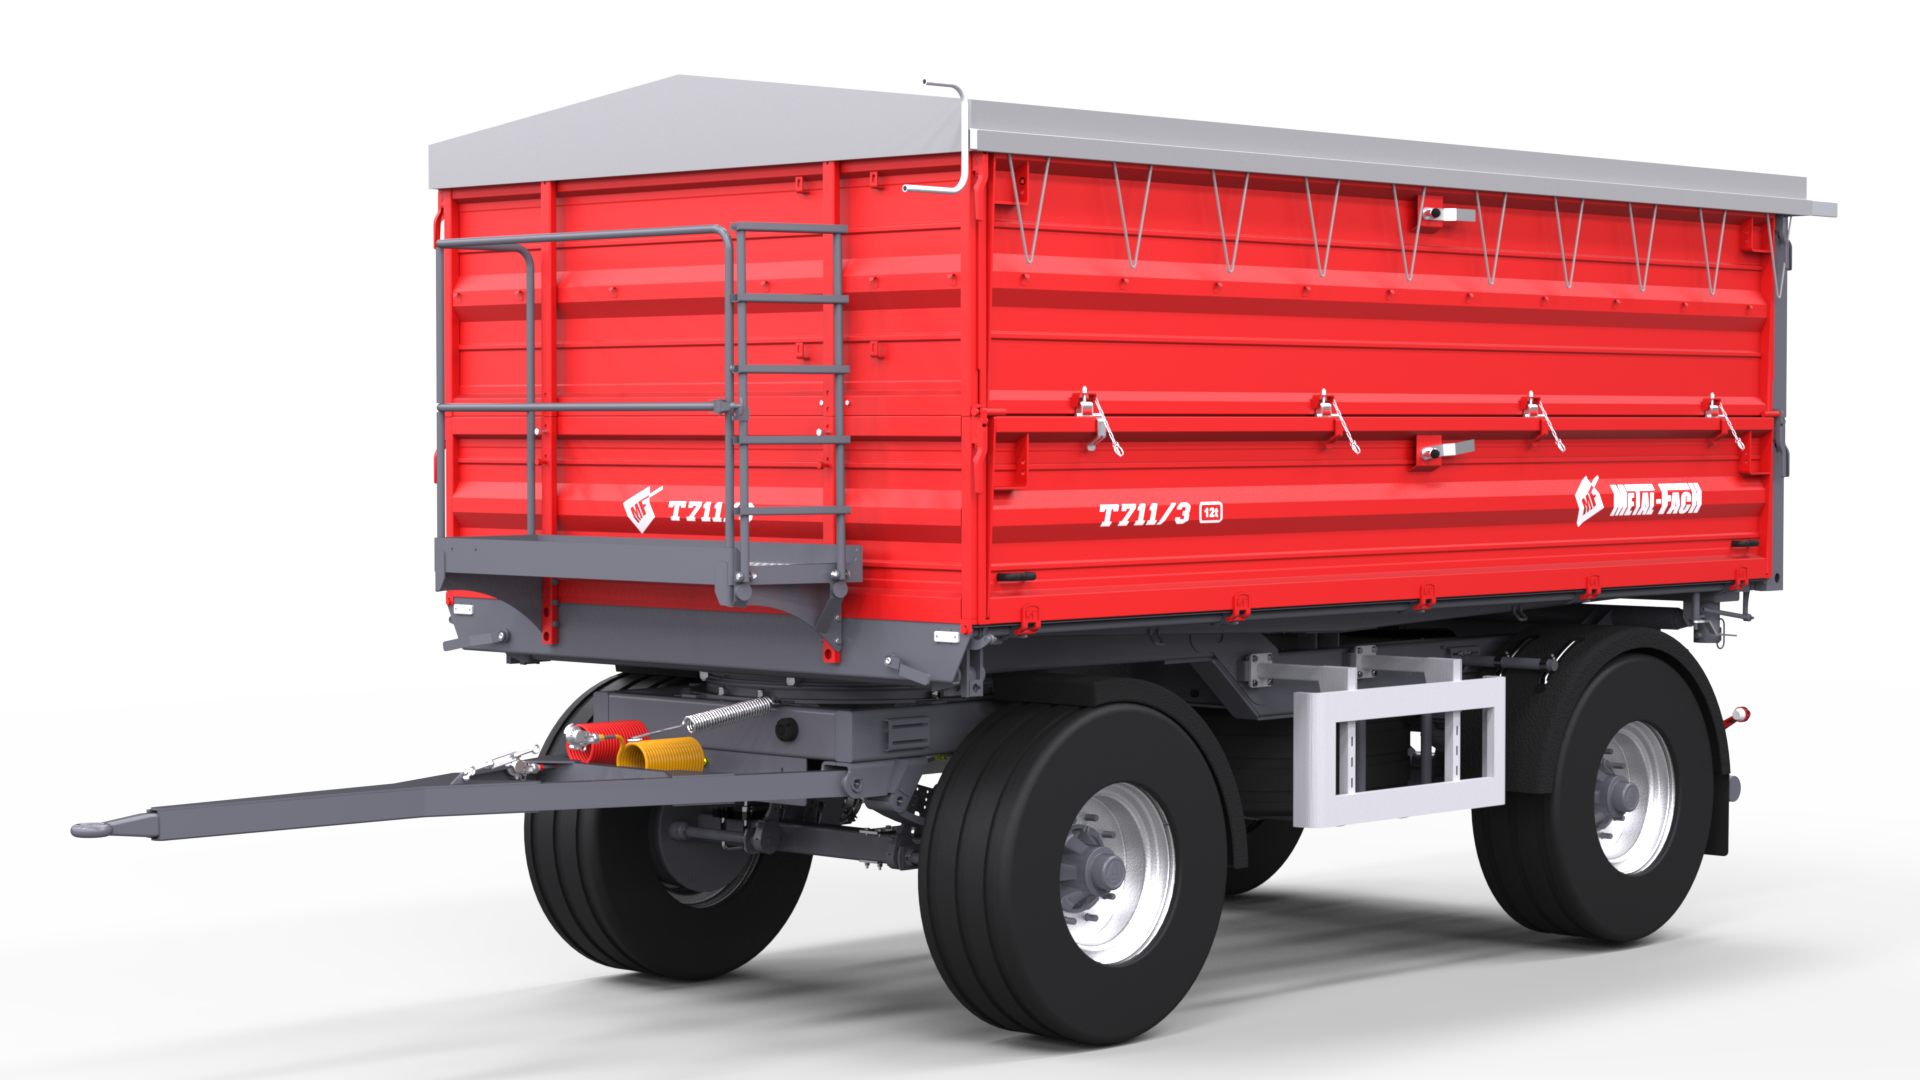 Double axle Agricultural Trailer T711/3